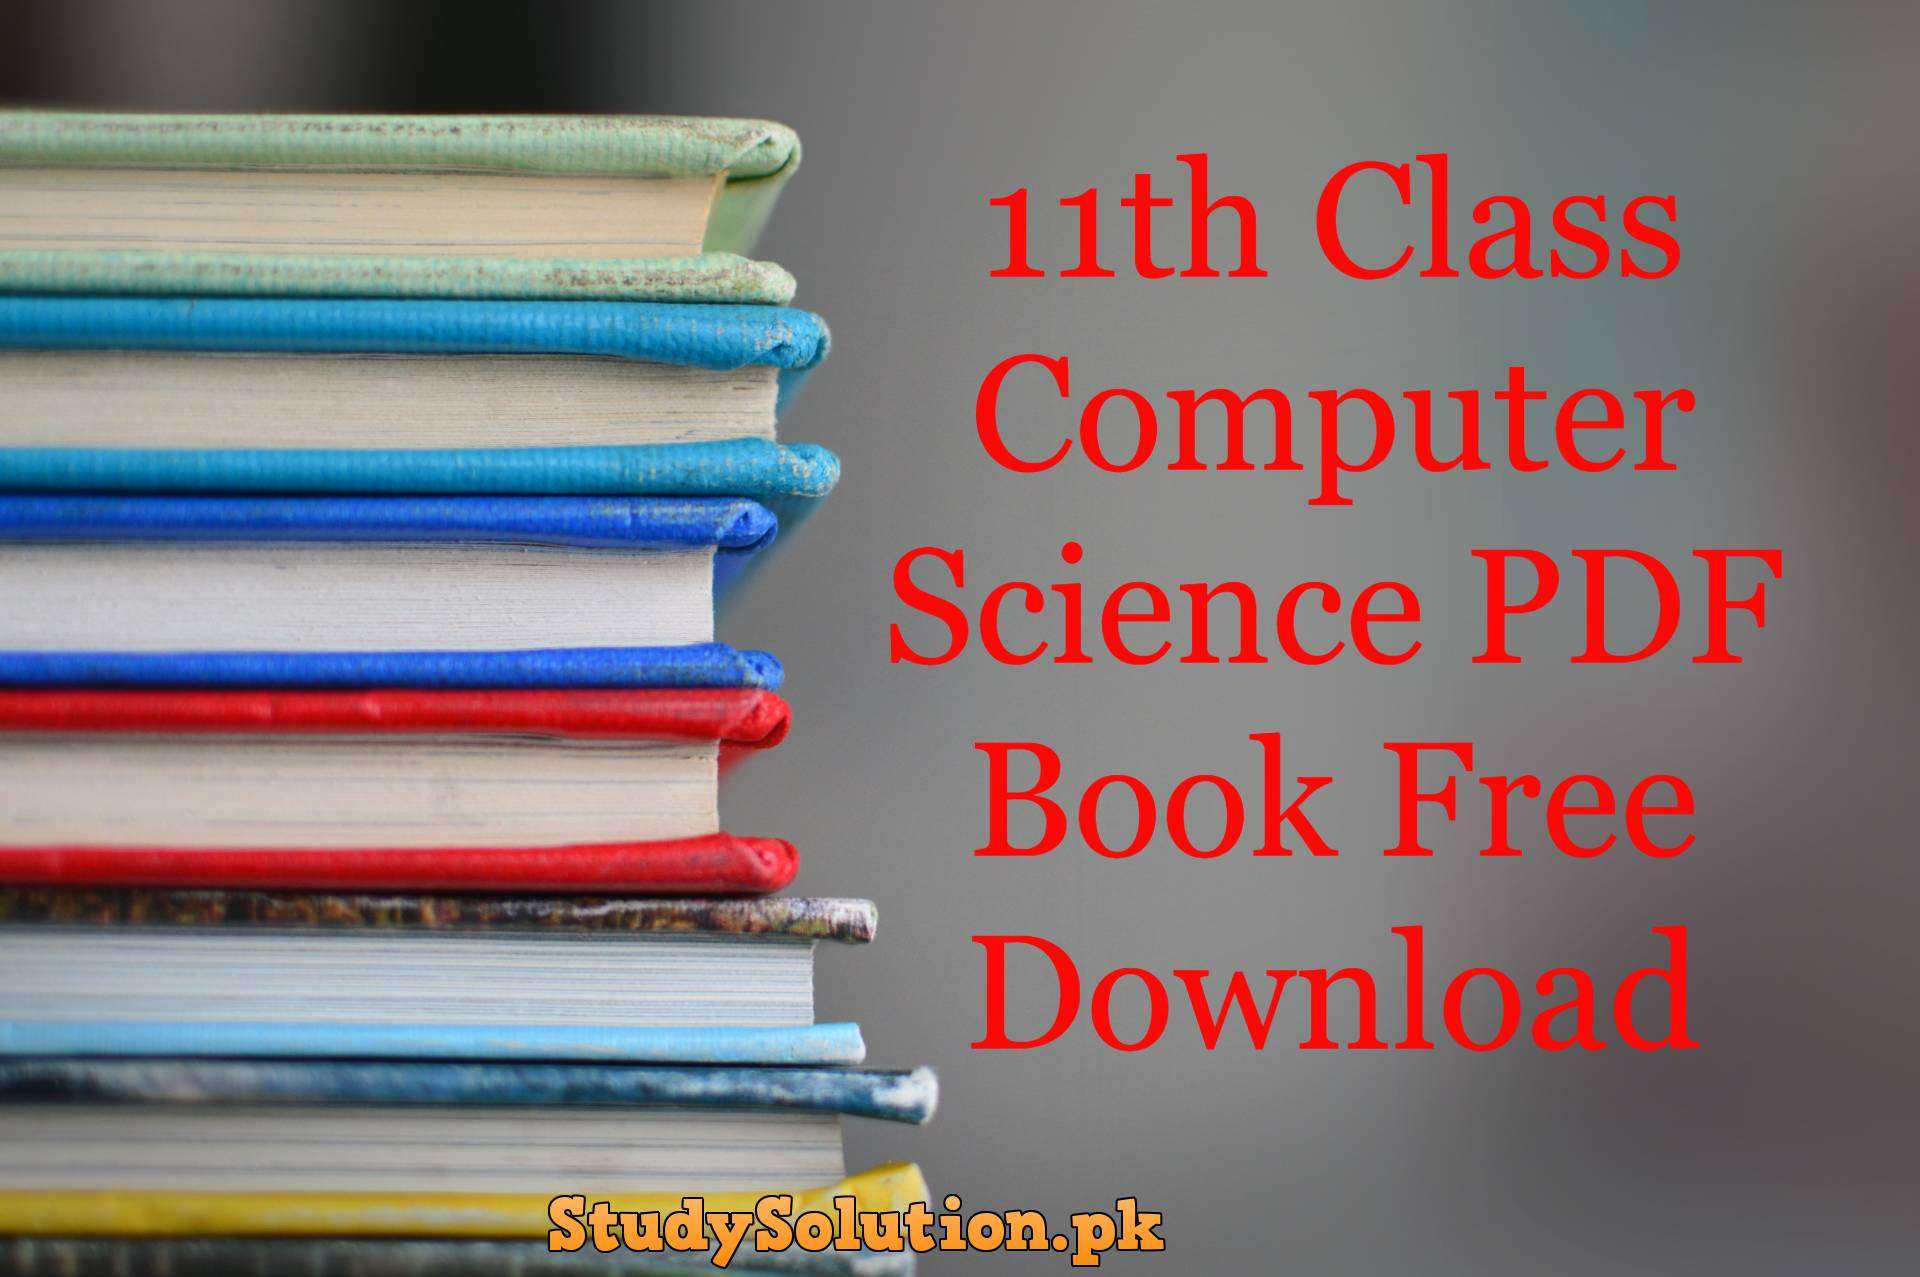 11th Class Computer Science PDF Book Free Download